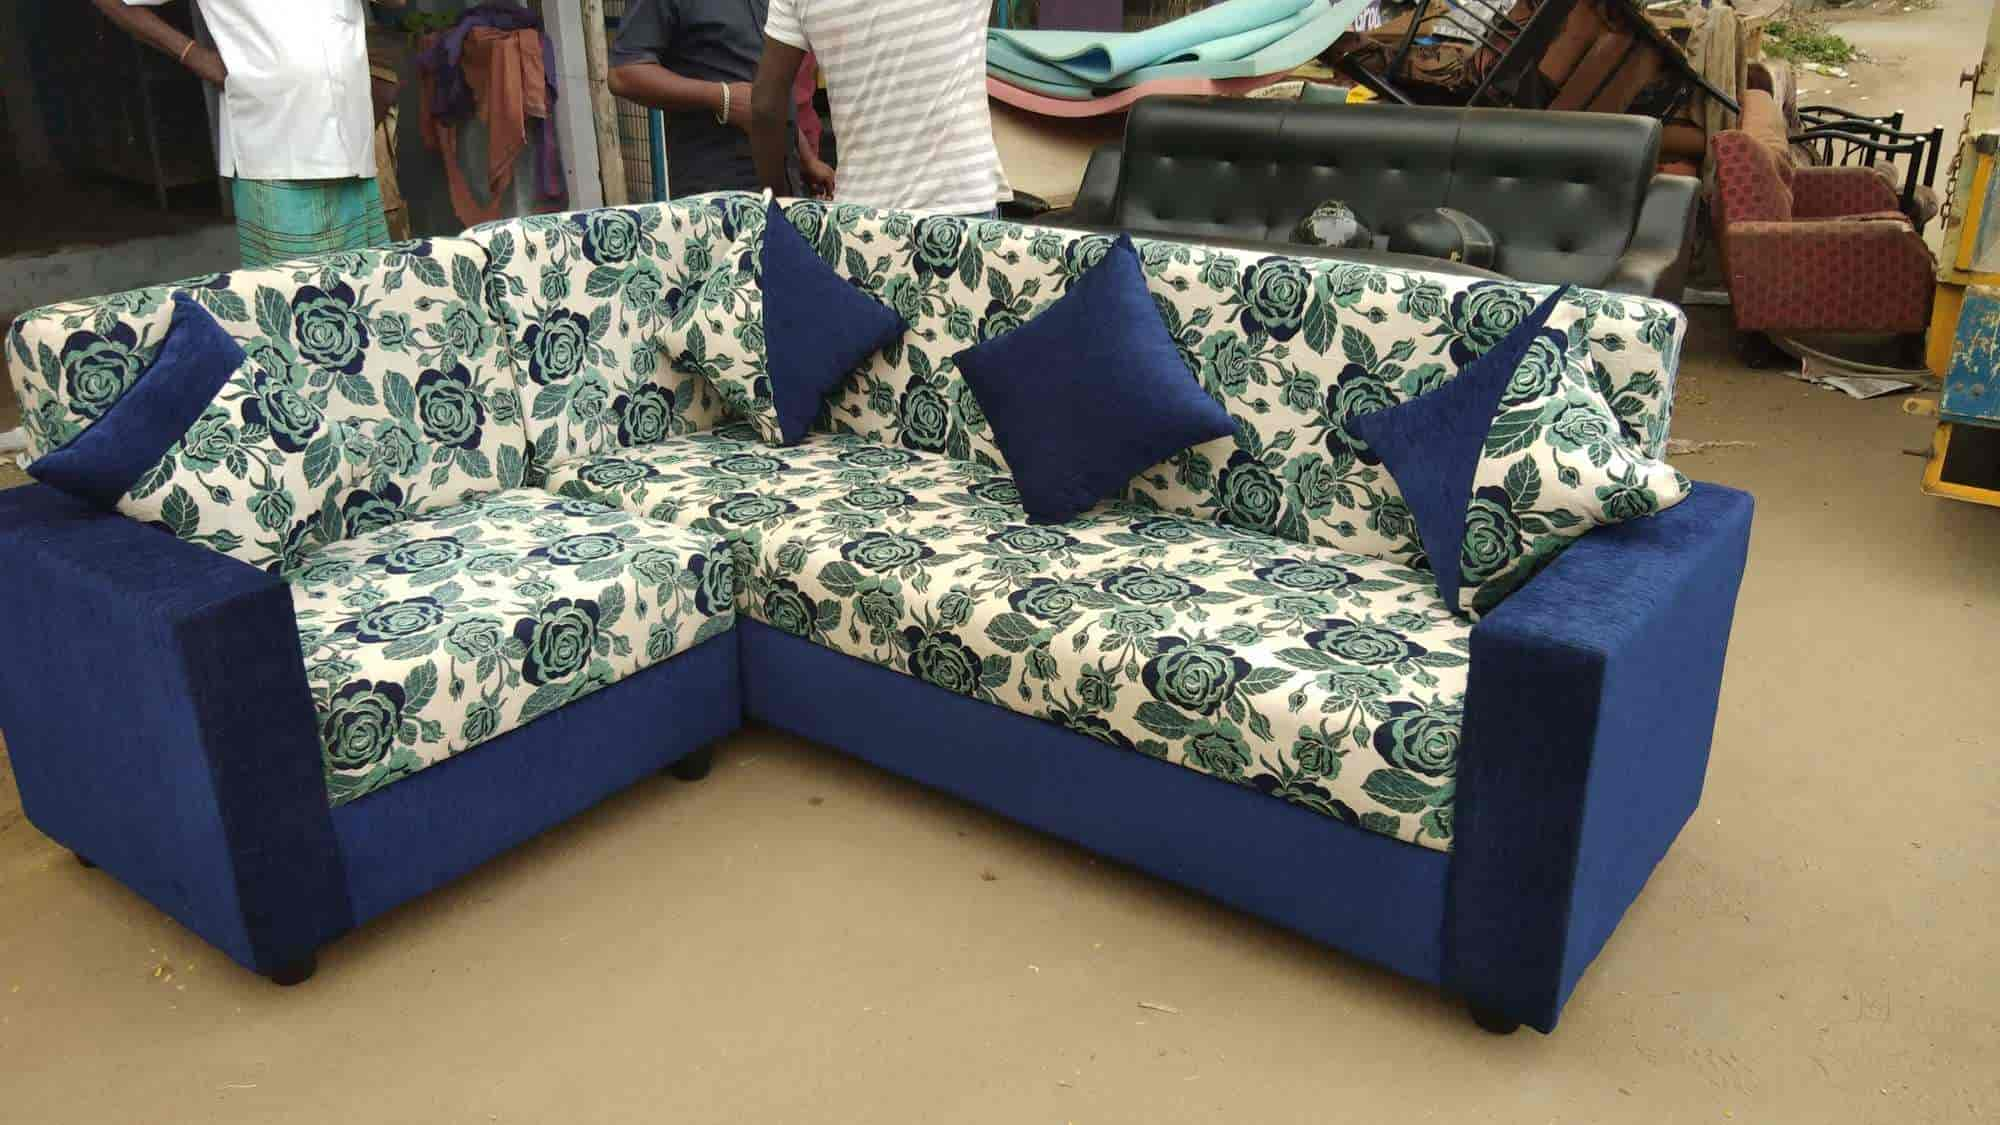 New Best Sofa Works Photos, Ganapathy, Coimbatore- Pictures & Images ...